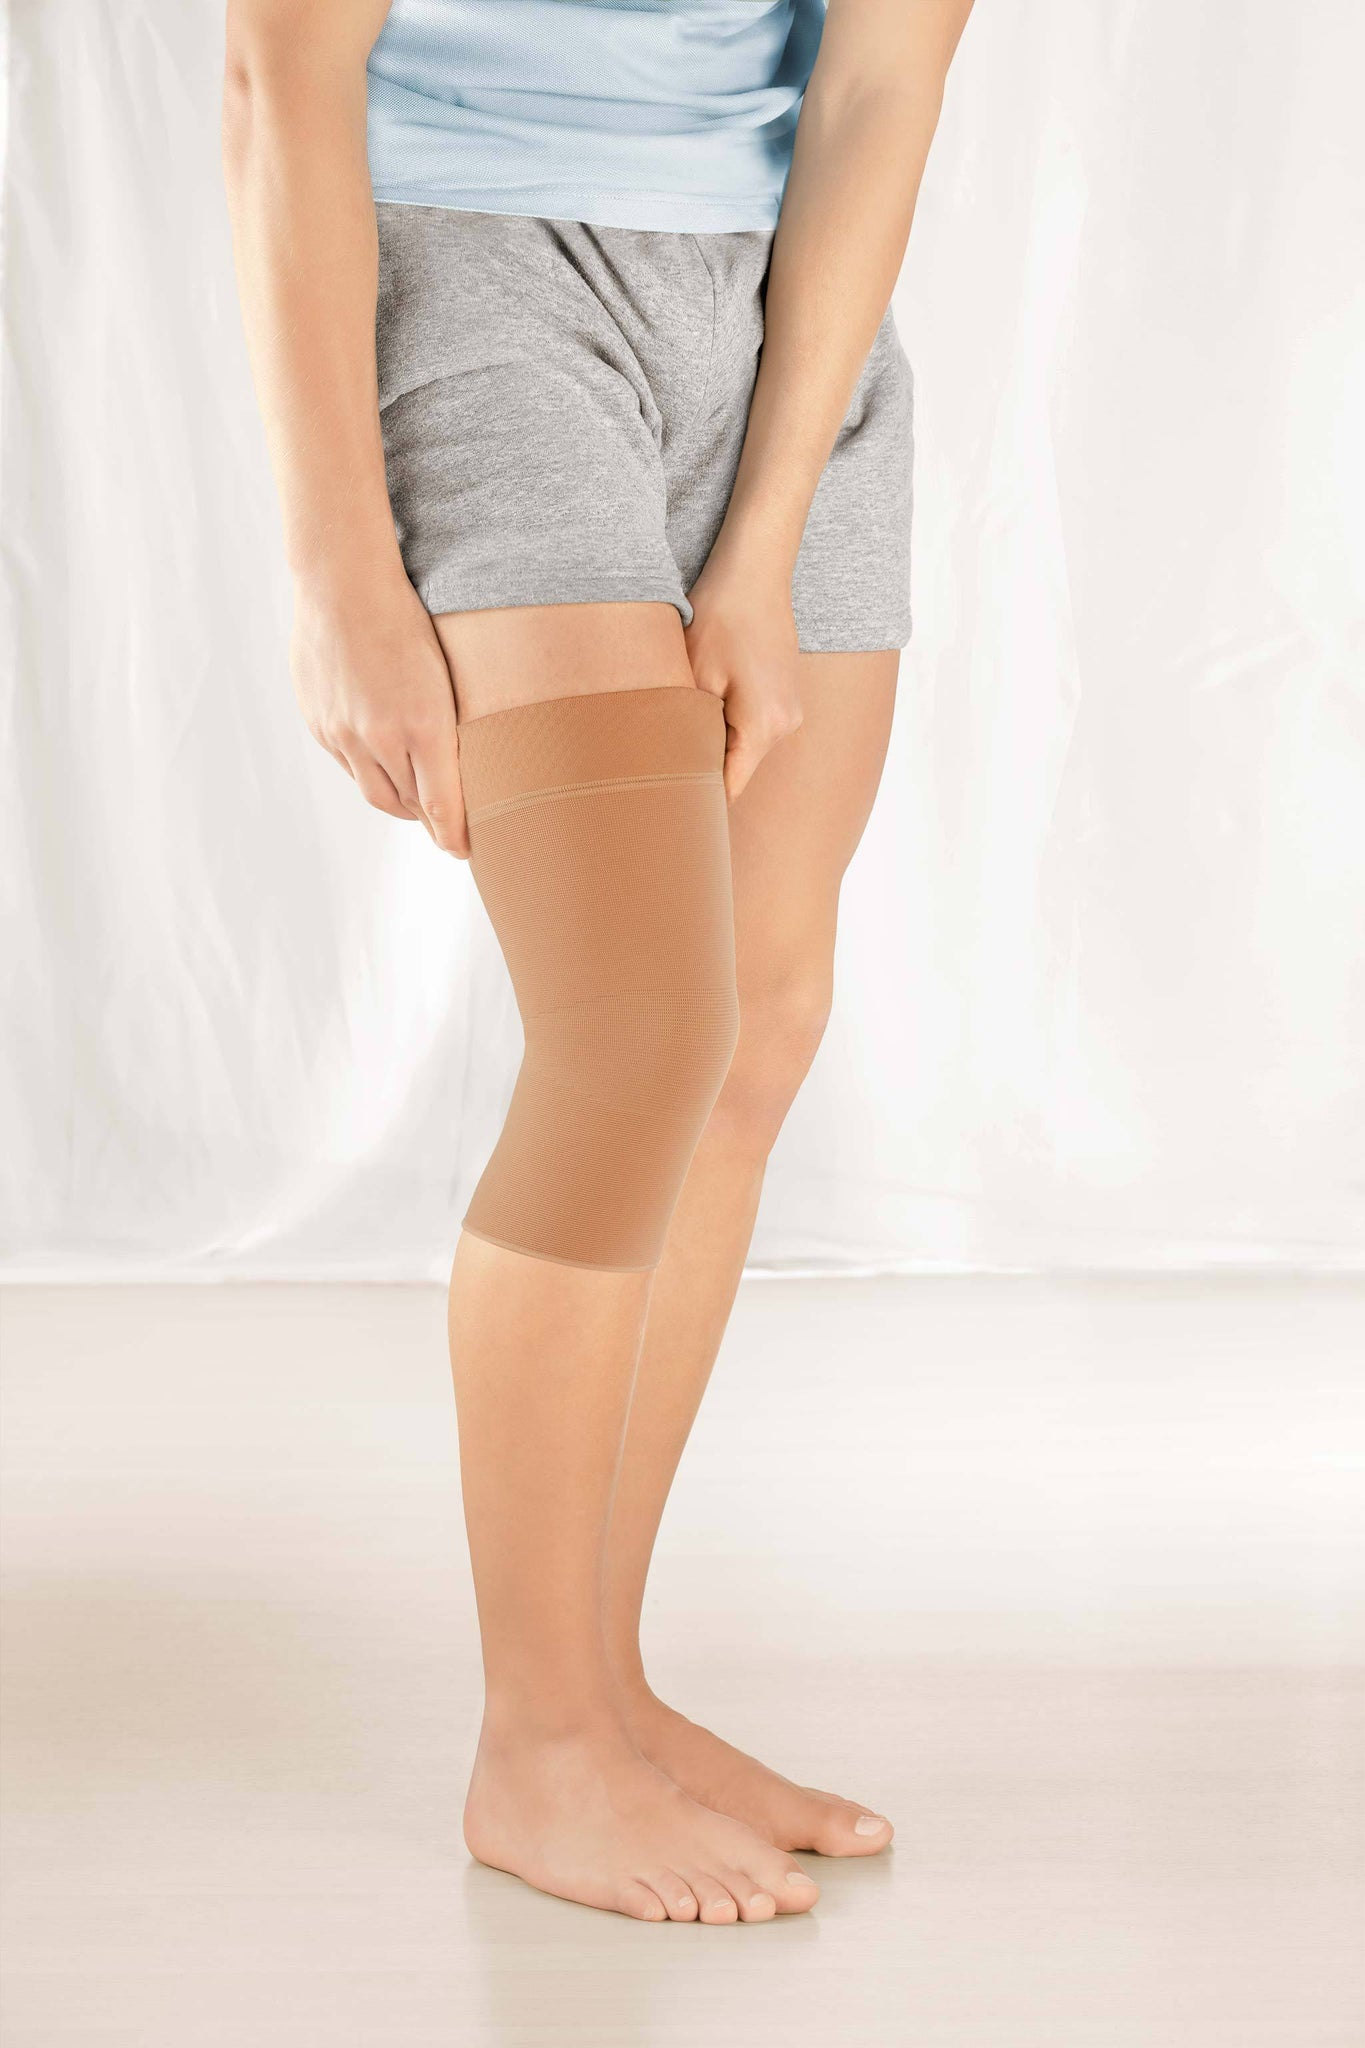 protect.seamless knit knee support